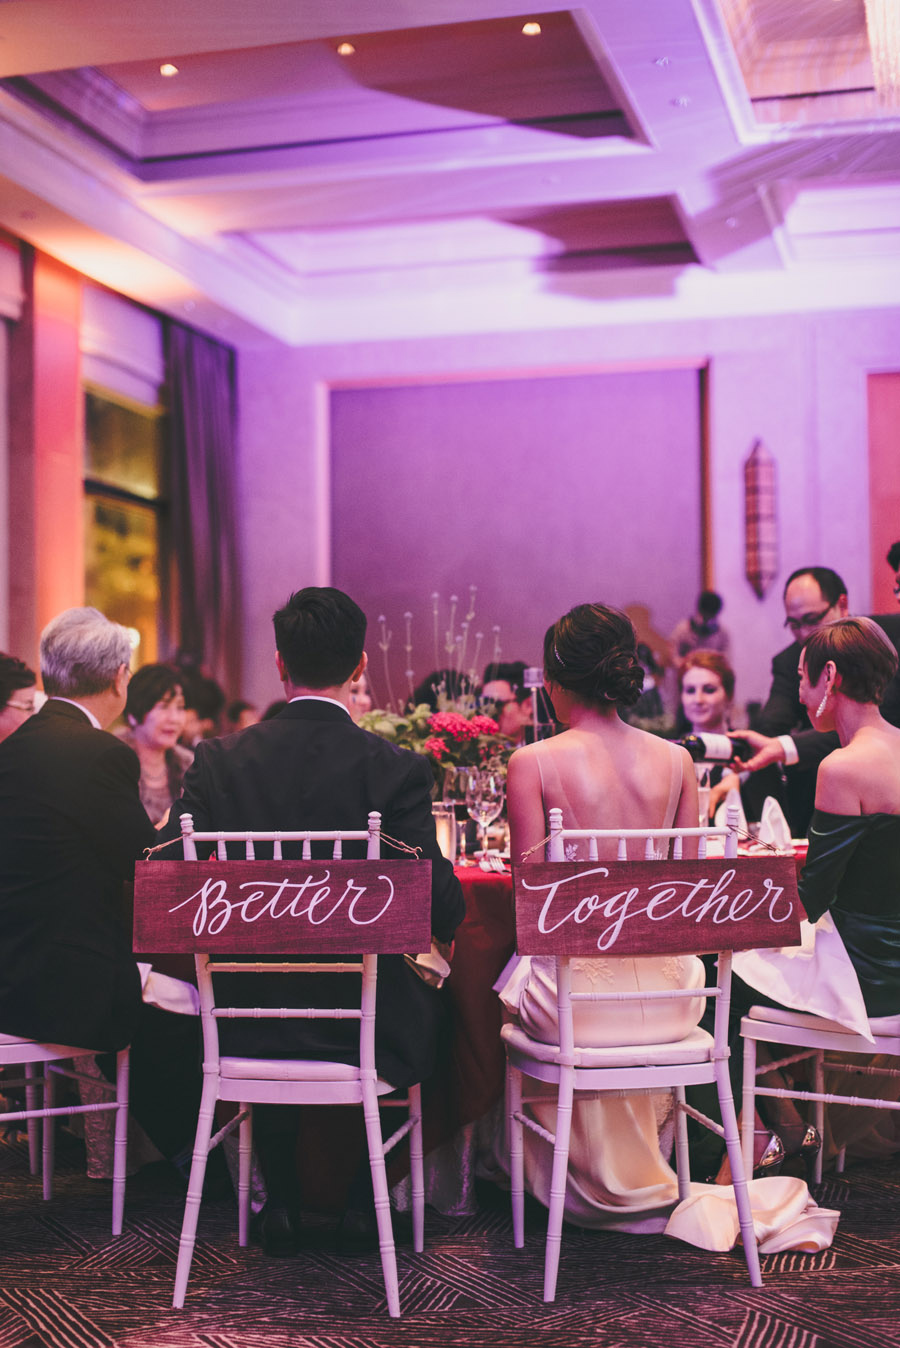 """""""Better Together"""" signs for a wedding by Chavelli.com 